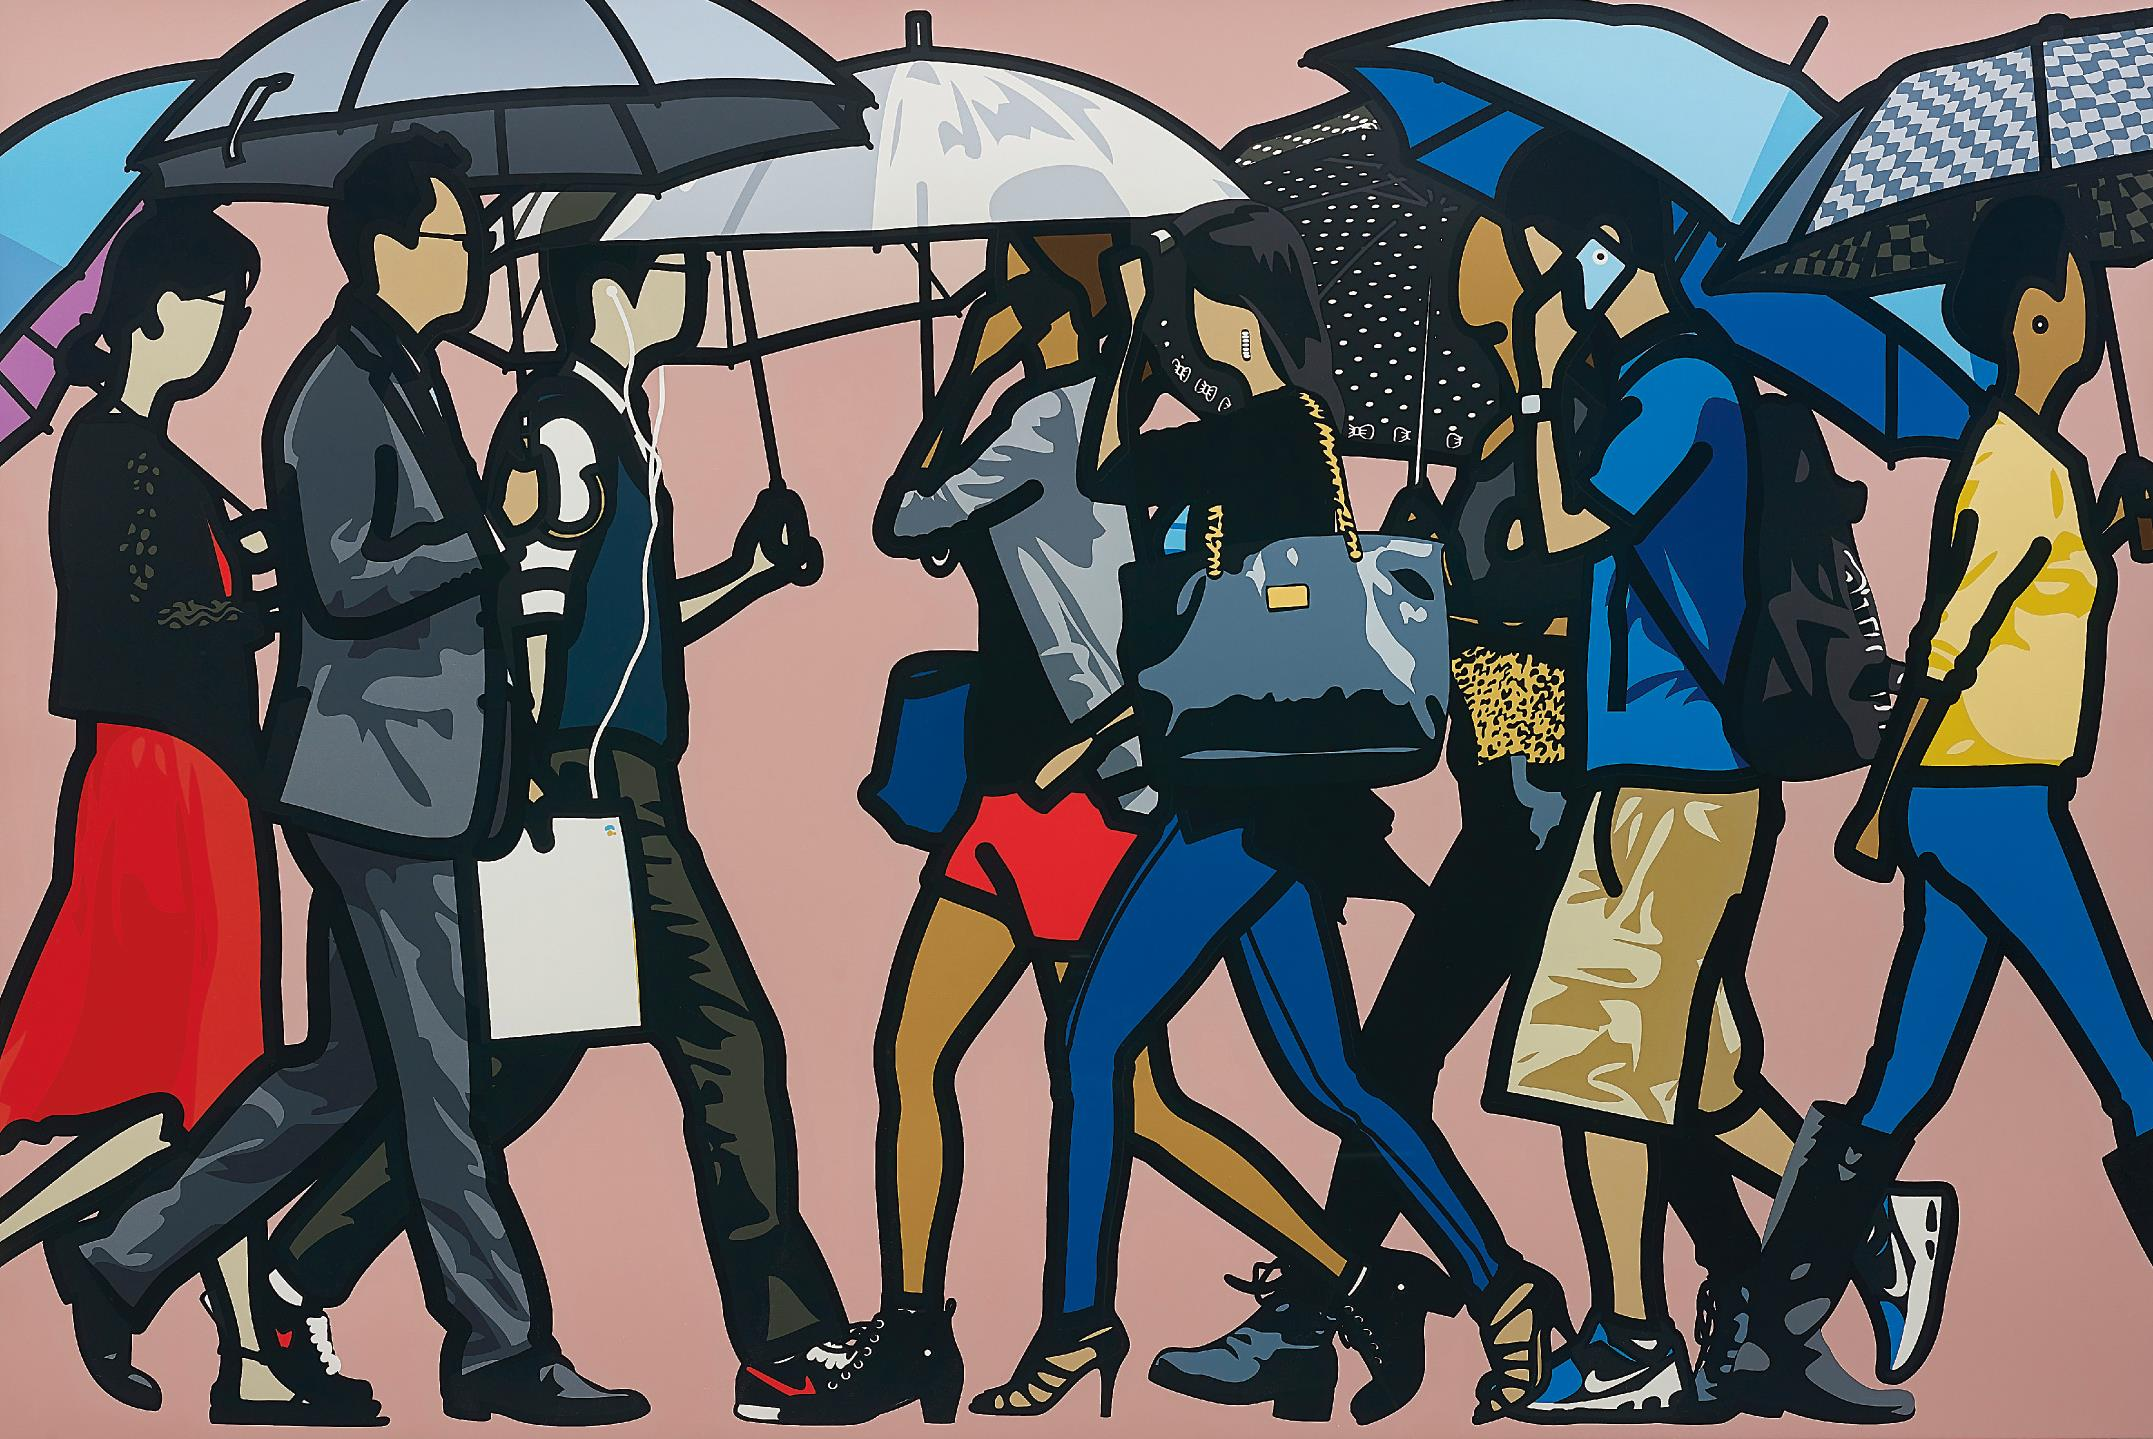 Julian Opie-Walking in the Rain, Seoul-2015